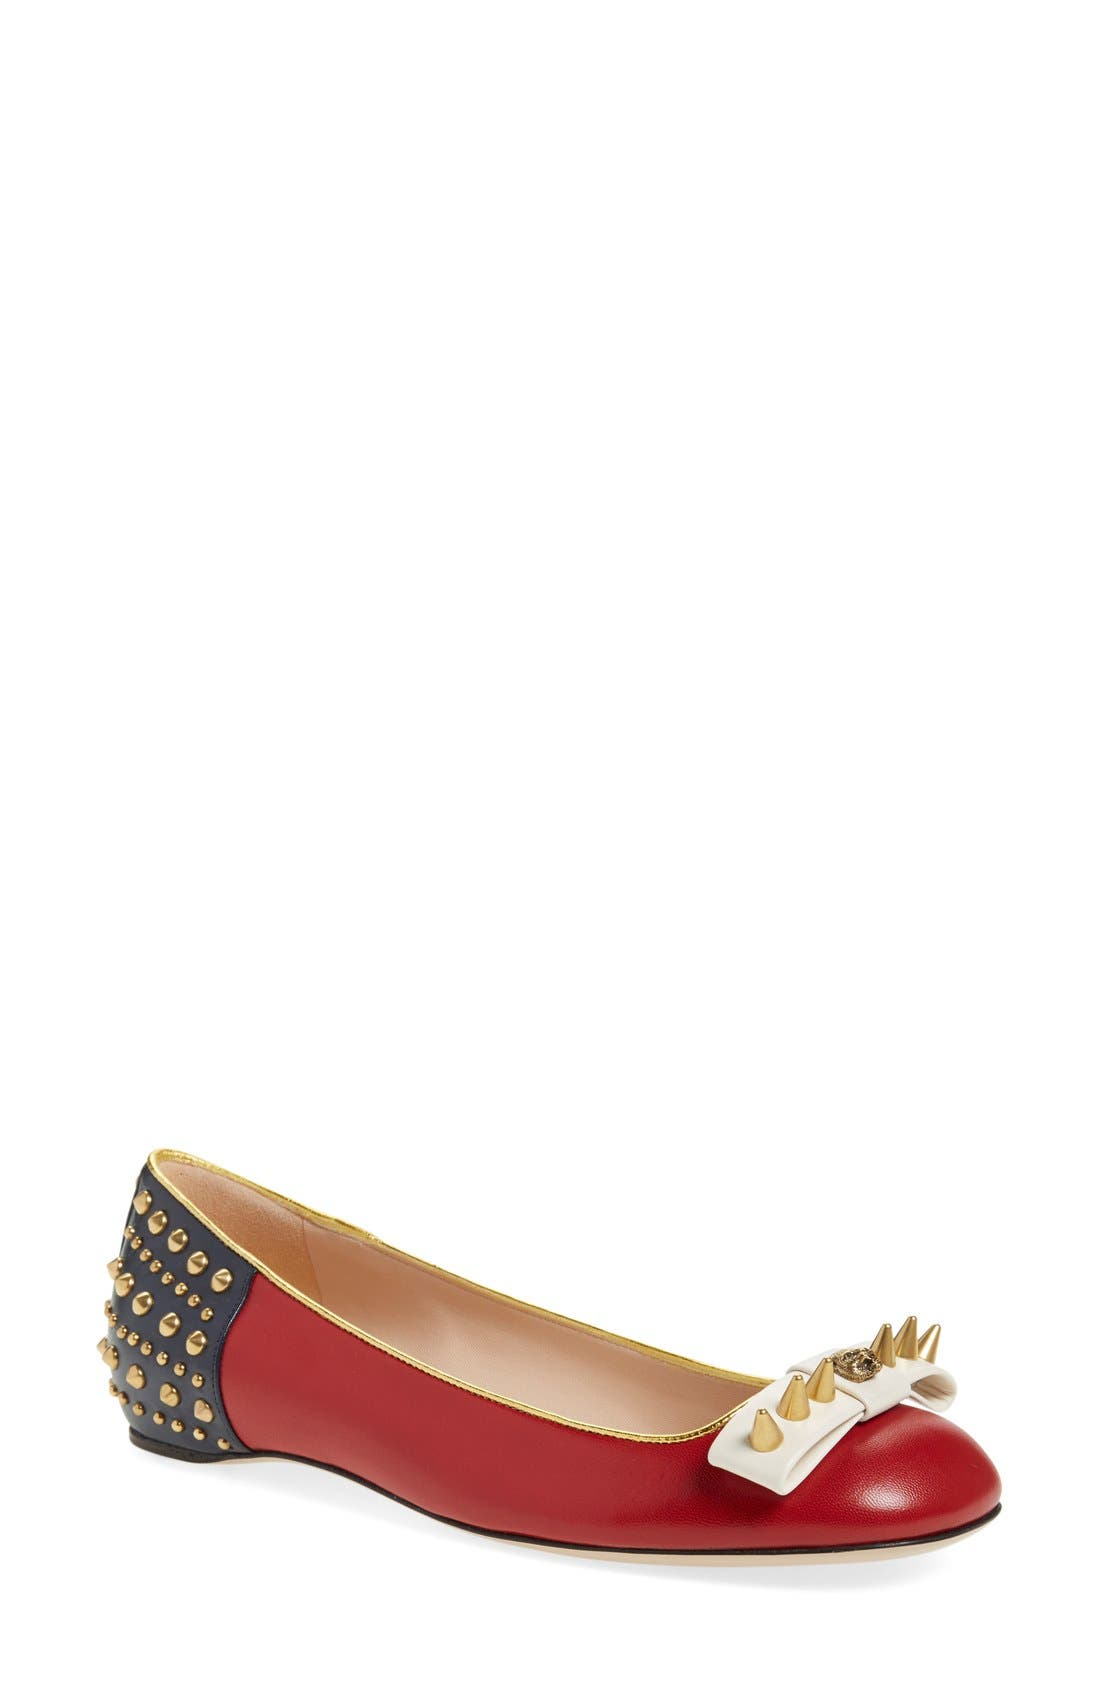 Alternate Image 1 Selected - Gucci 'Lexi' Studded Square Toe Flat (Women)